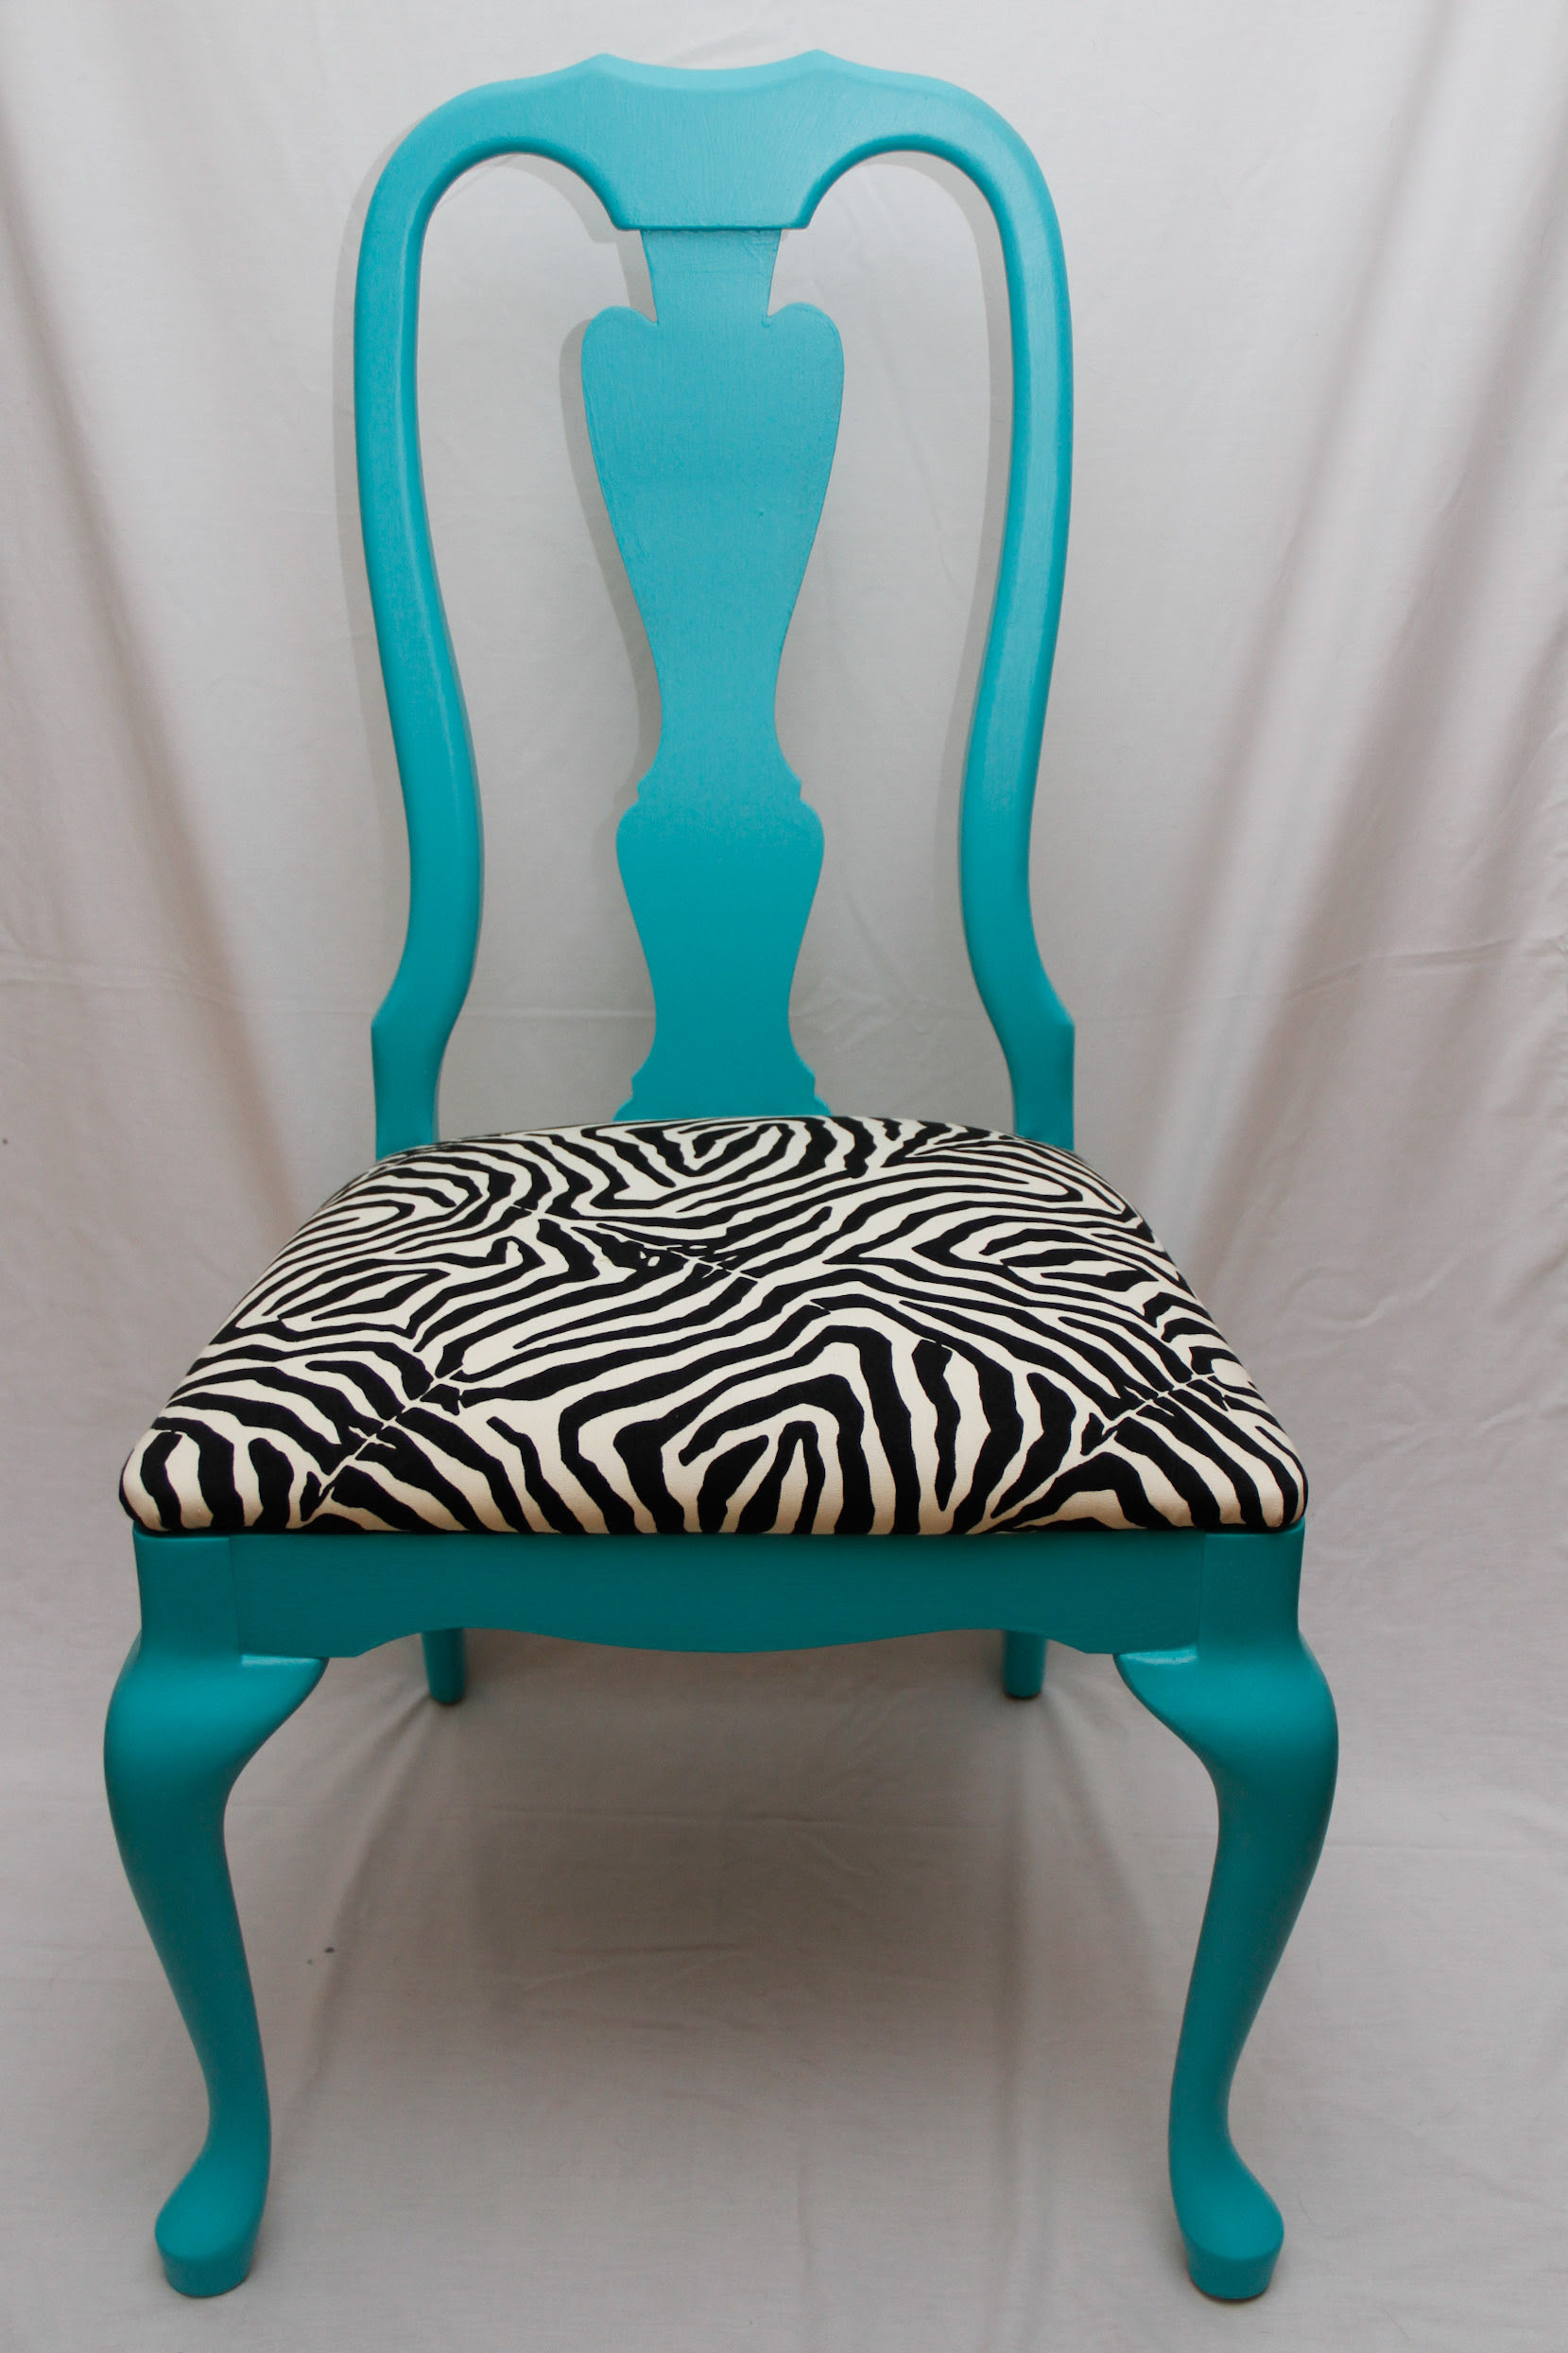 Zebra and Teal Chair | Lori Wilson's Blog